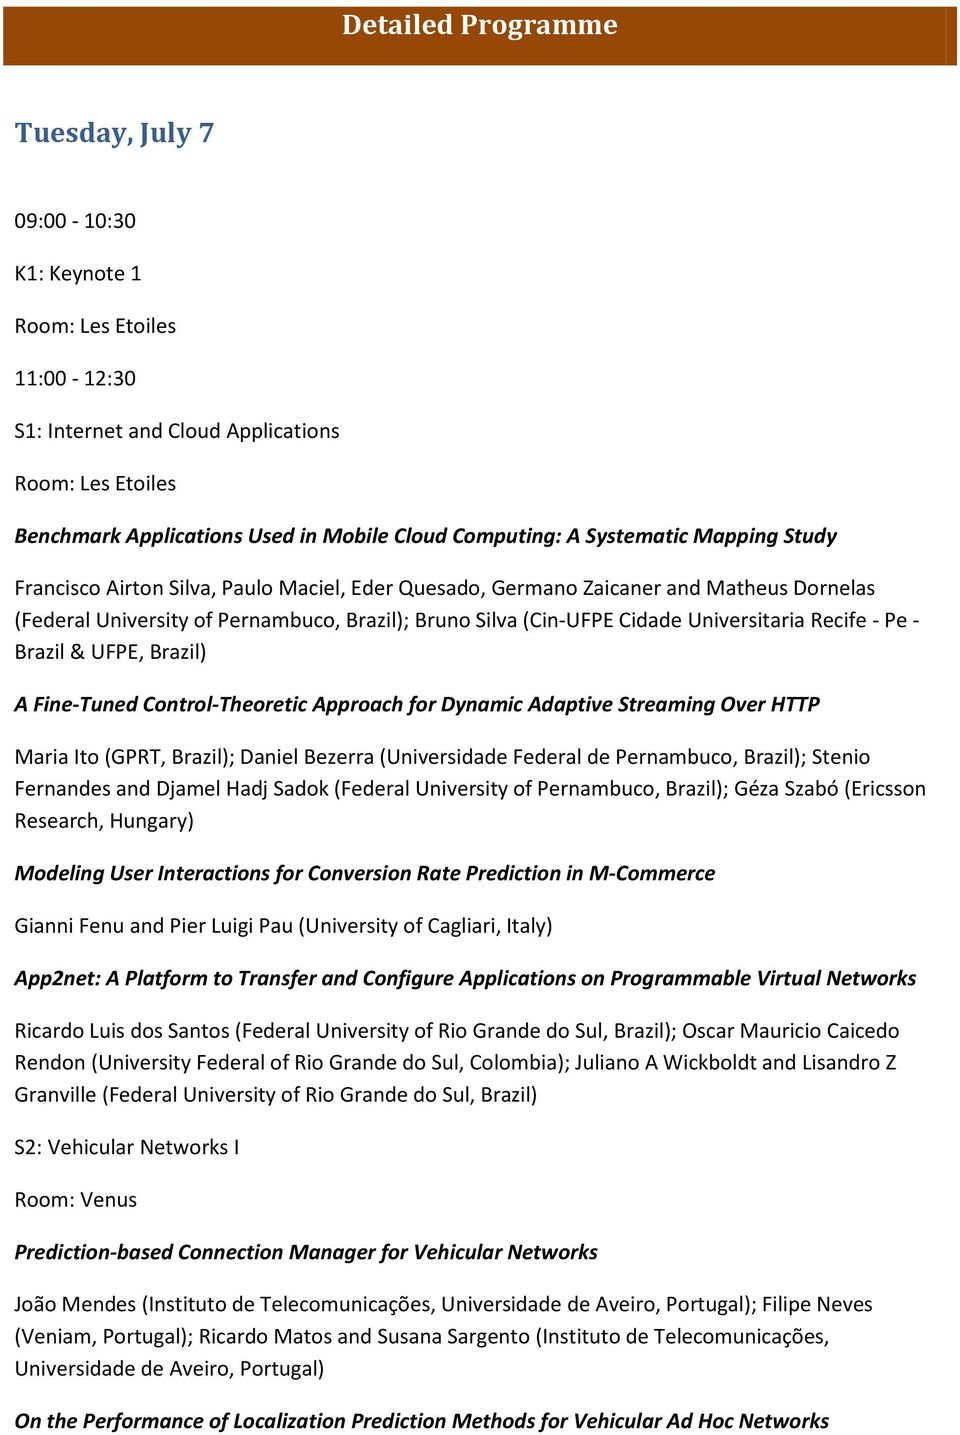 Universitaria Recife - Pe - Brazil & UFPE, Brazil) A Fine-Tuned Control-Theoretic Approach for Dynamic Adaptive Streaming Over HTTP Maria Ito (GPRT, Brazil); Daniel Bezerra (Universidade Federal de